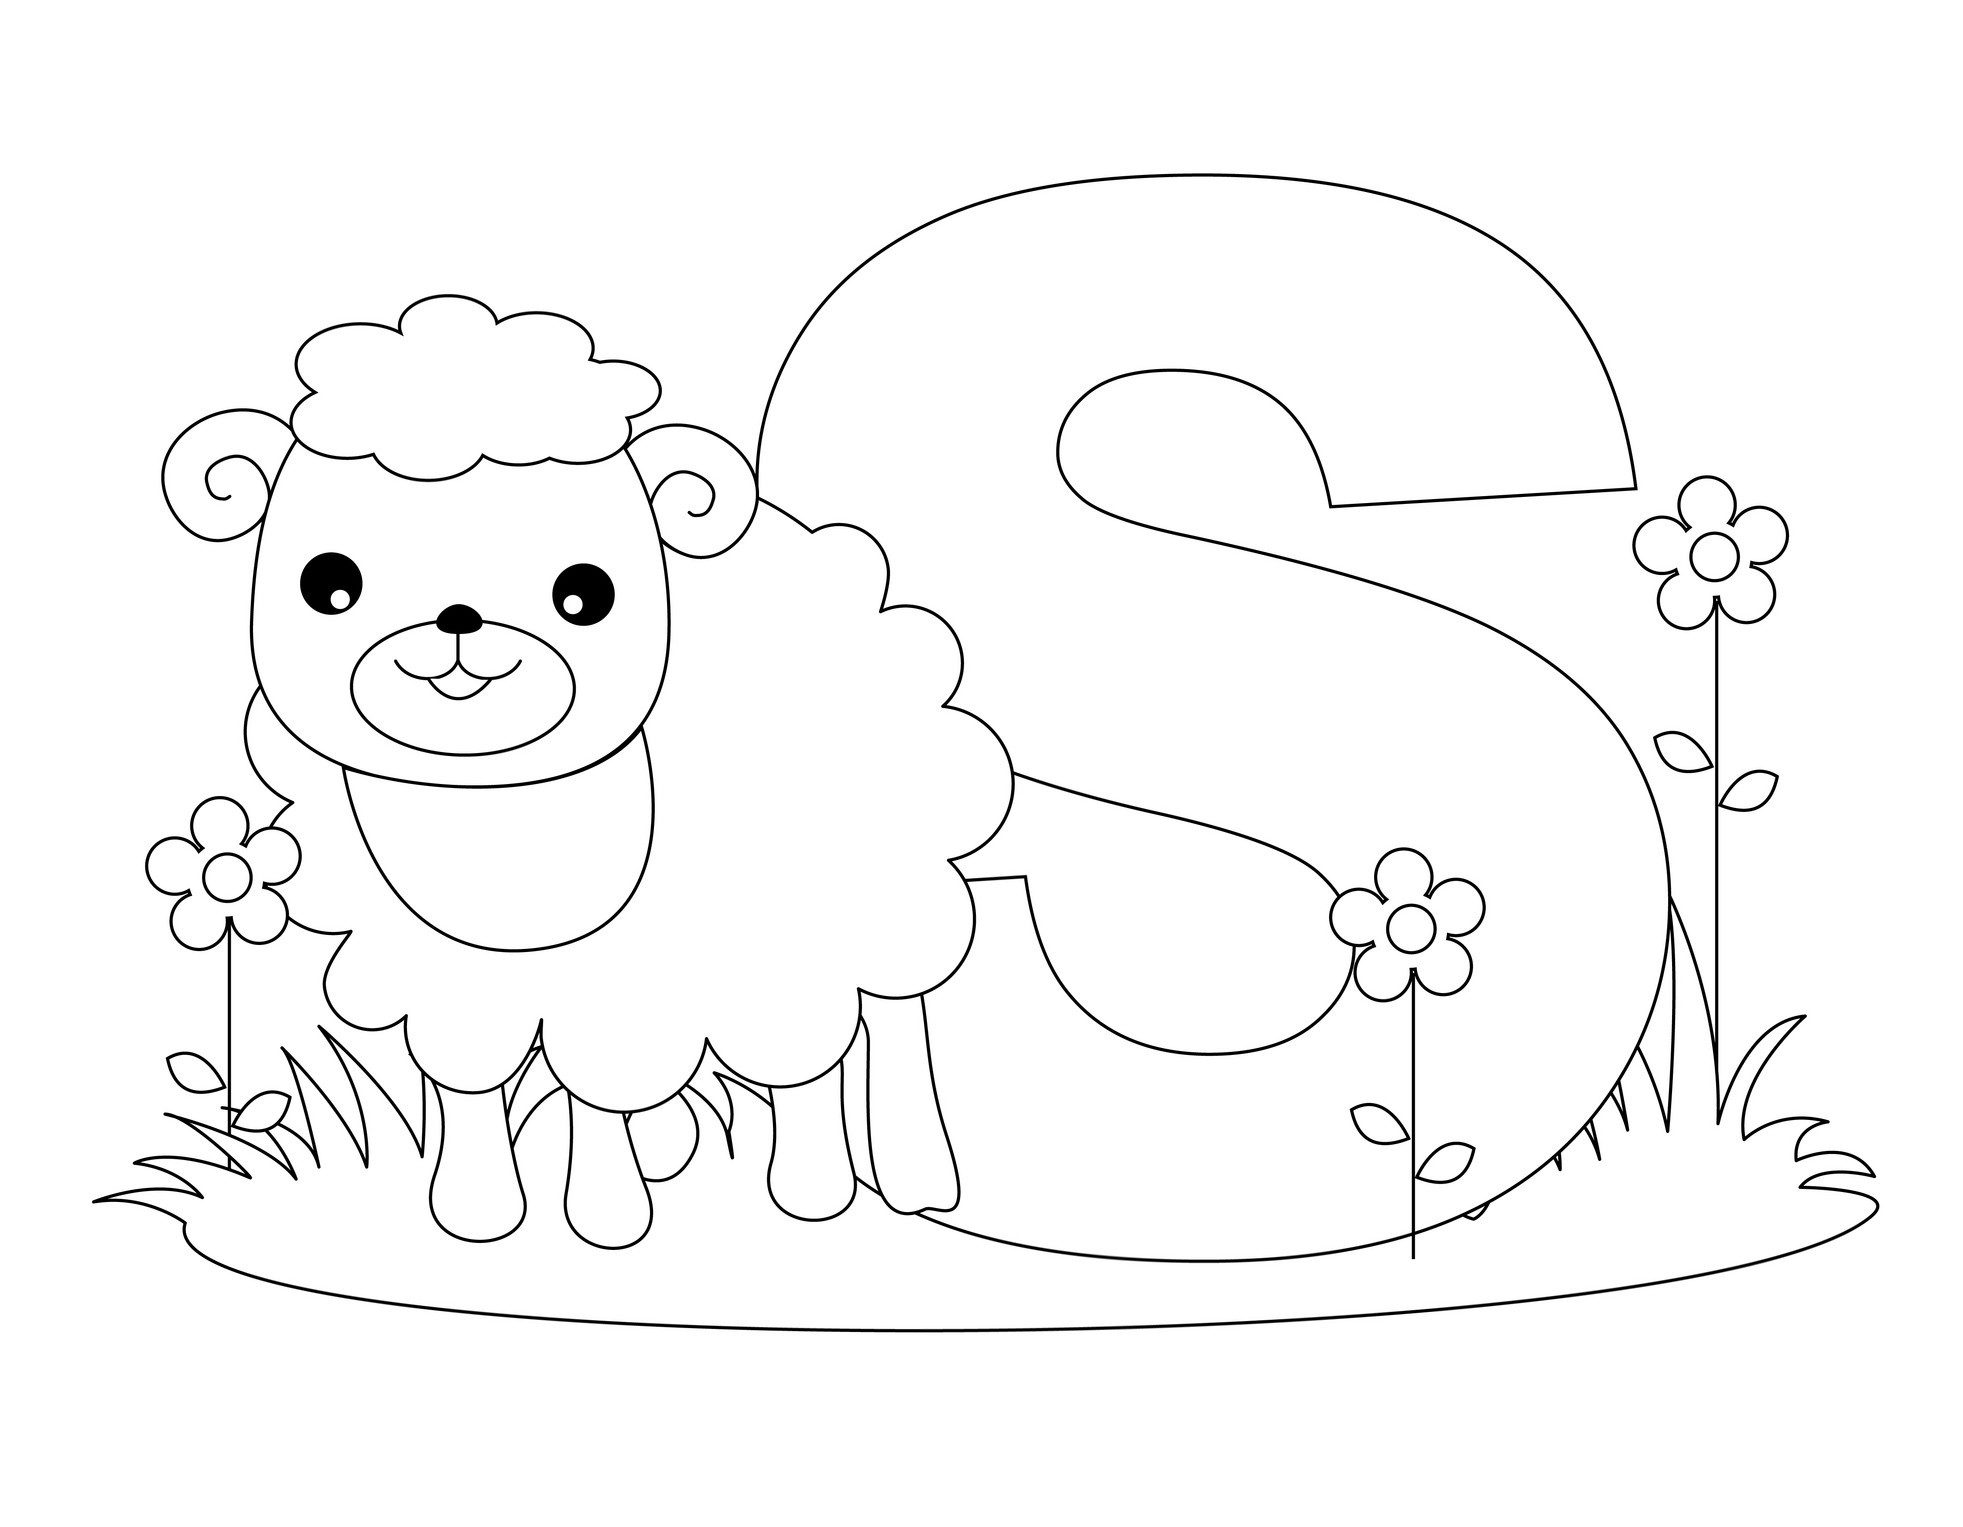 Block Letter Coloring Pages at GetDrawings.com   Free for ...